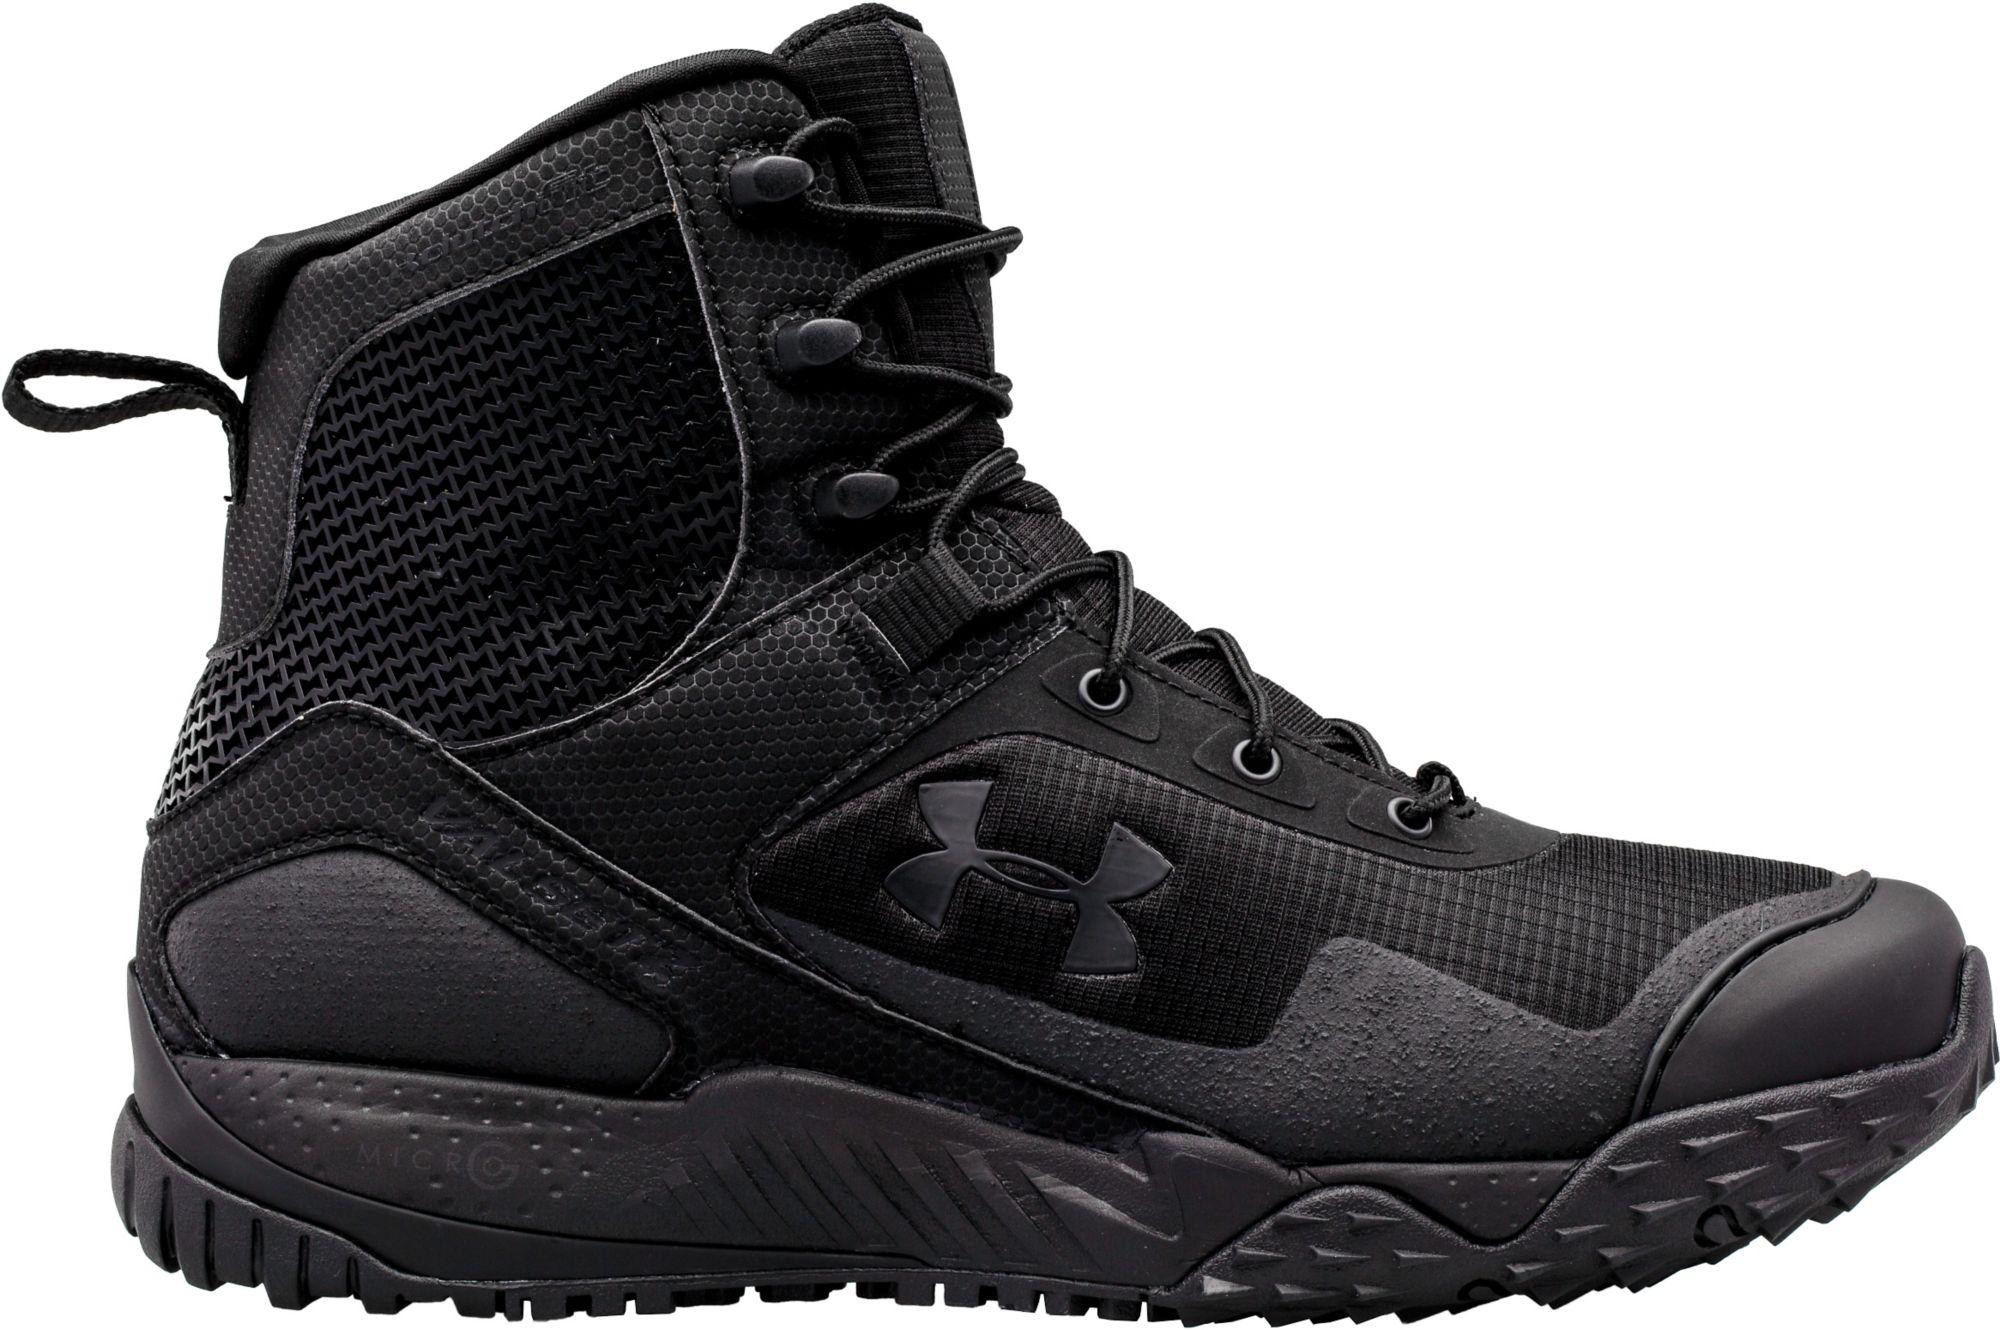 89052499a82 Lyst - Under Armour Valsetz Rts 7   Side Zip Tactical Boots in Black ...